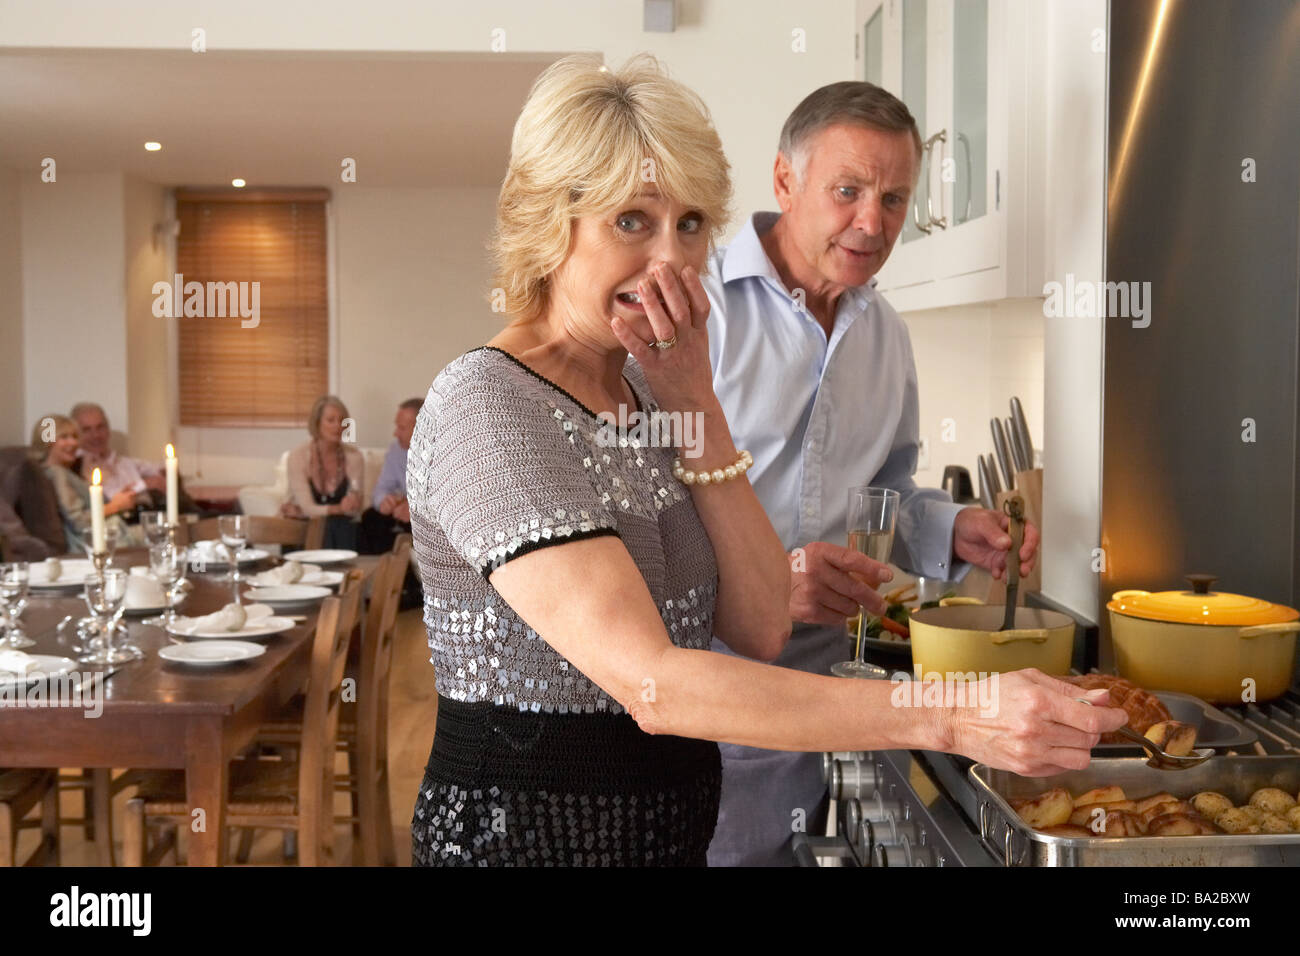 Couple Having Difficulty Cooking For A Dinner Party - Stock Image